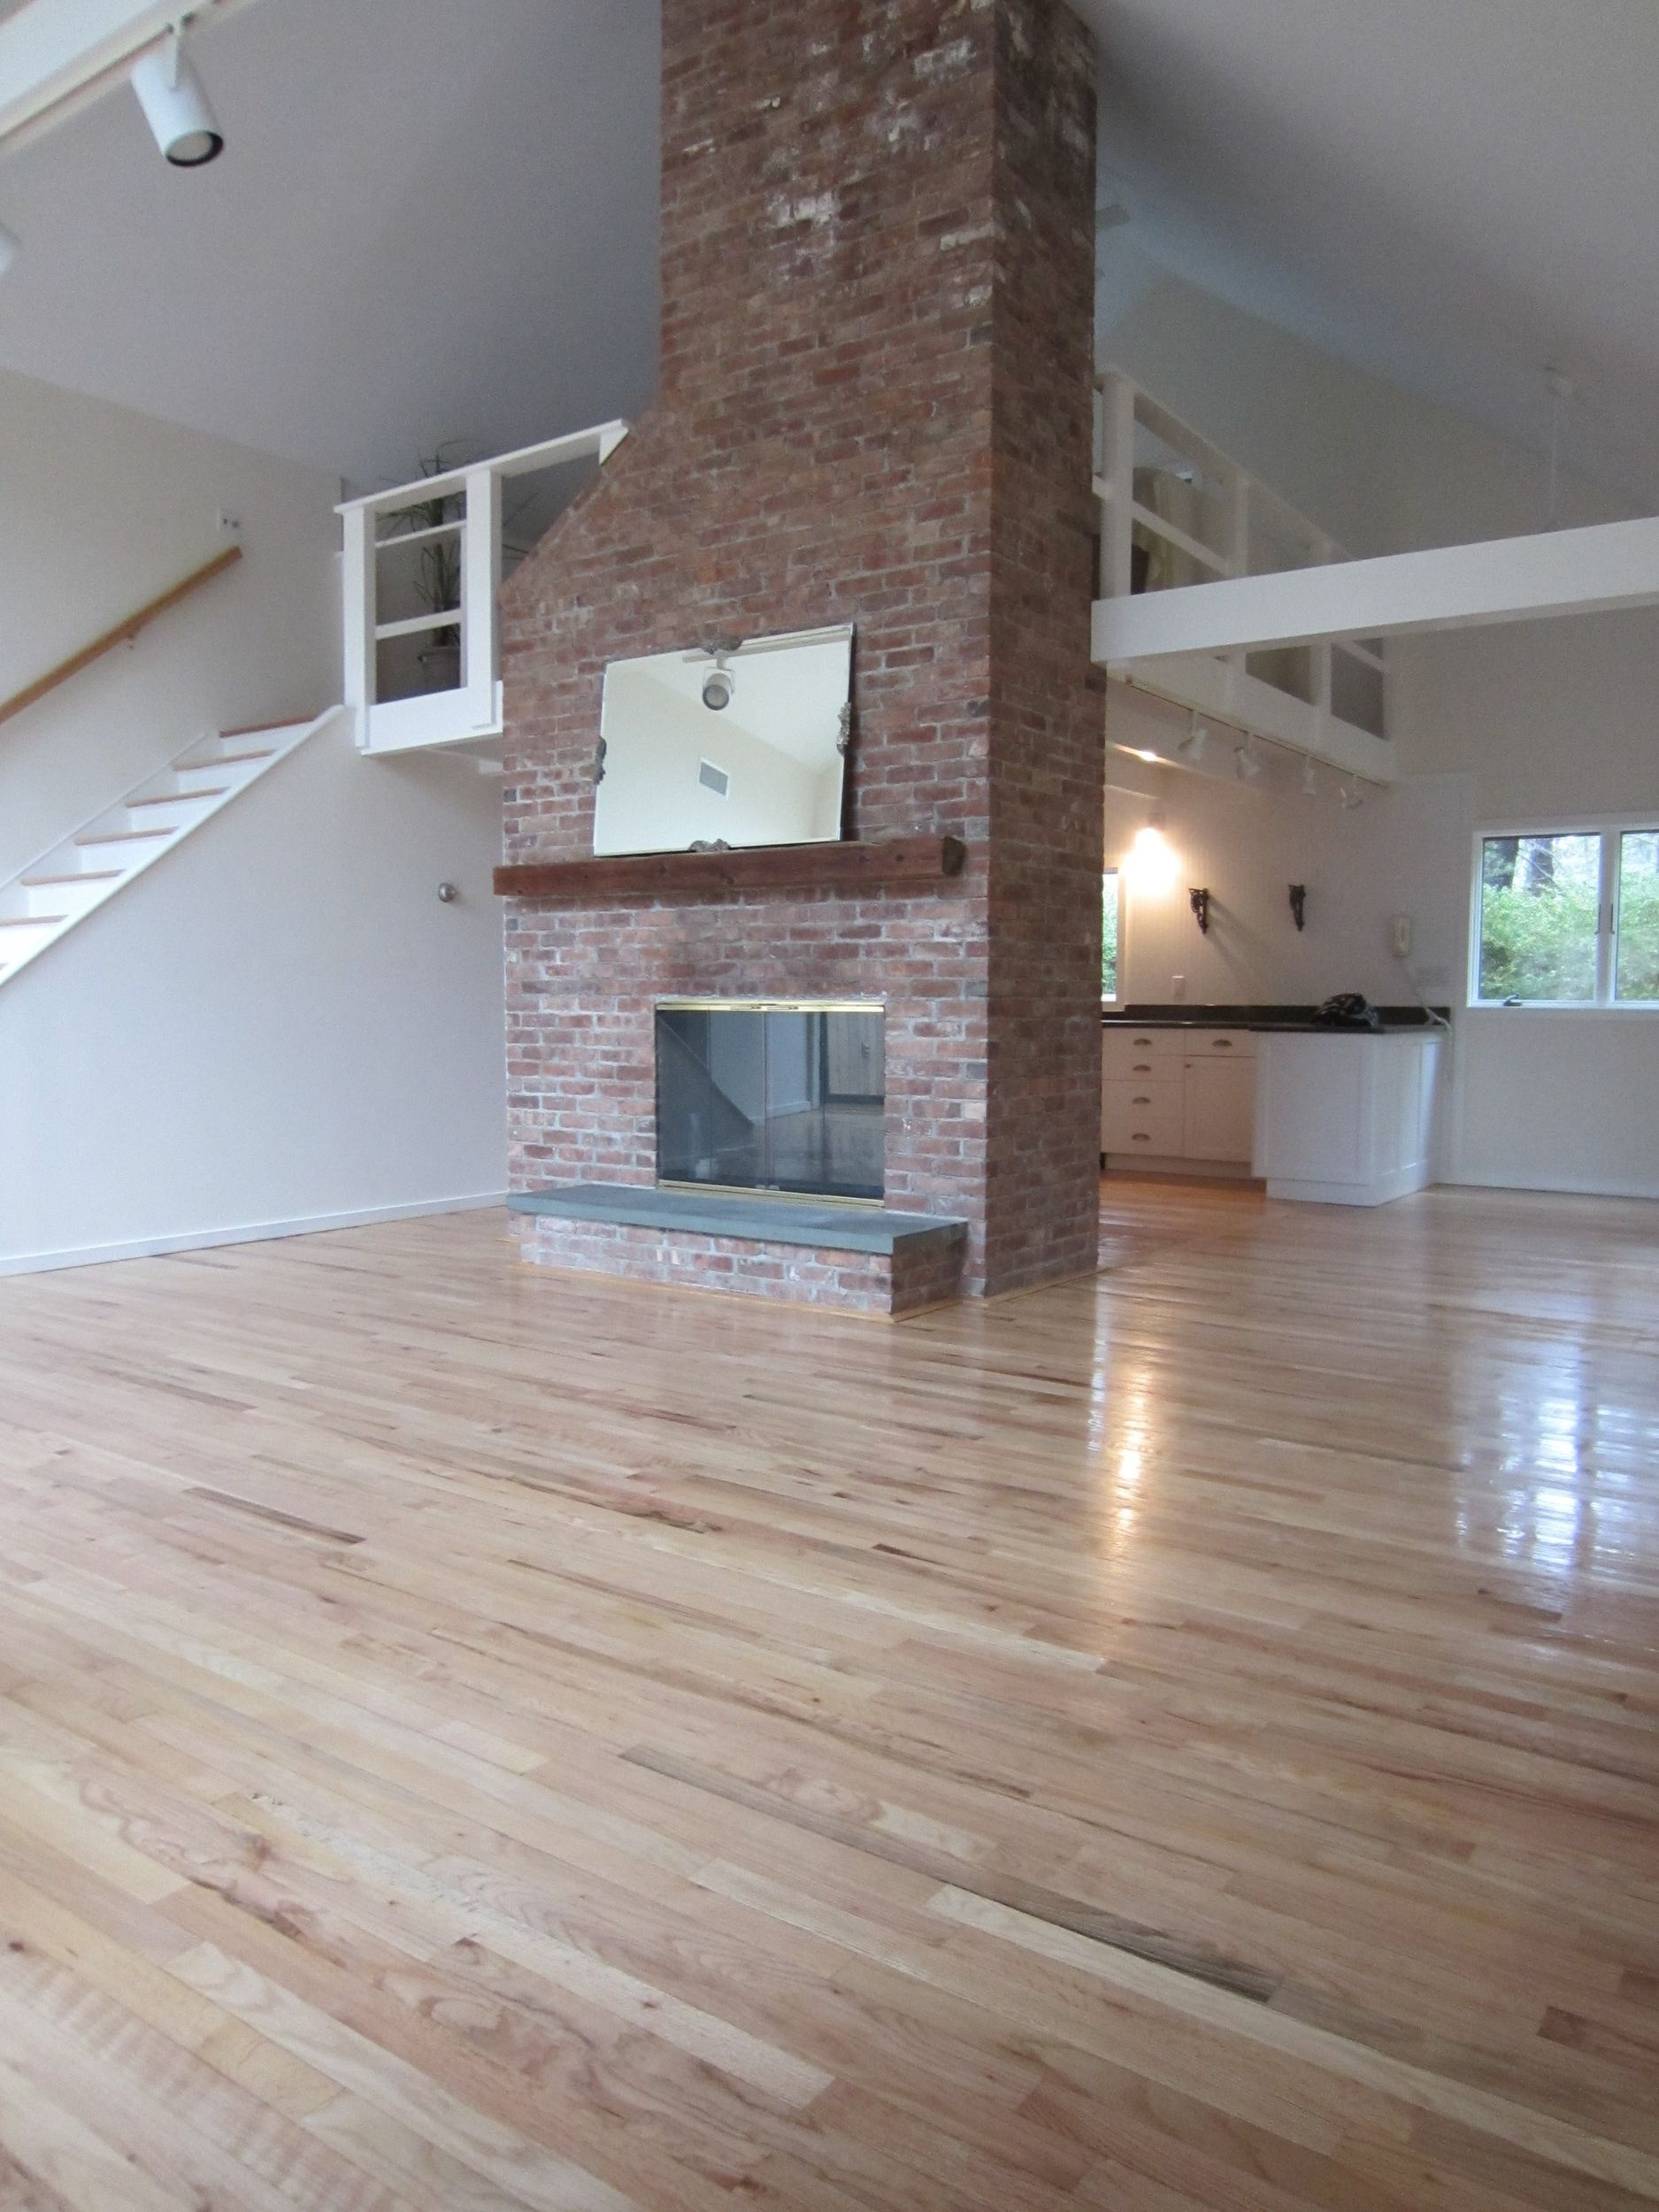 Hardwood floor refinishing project how long does it take